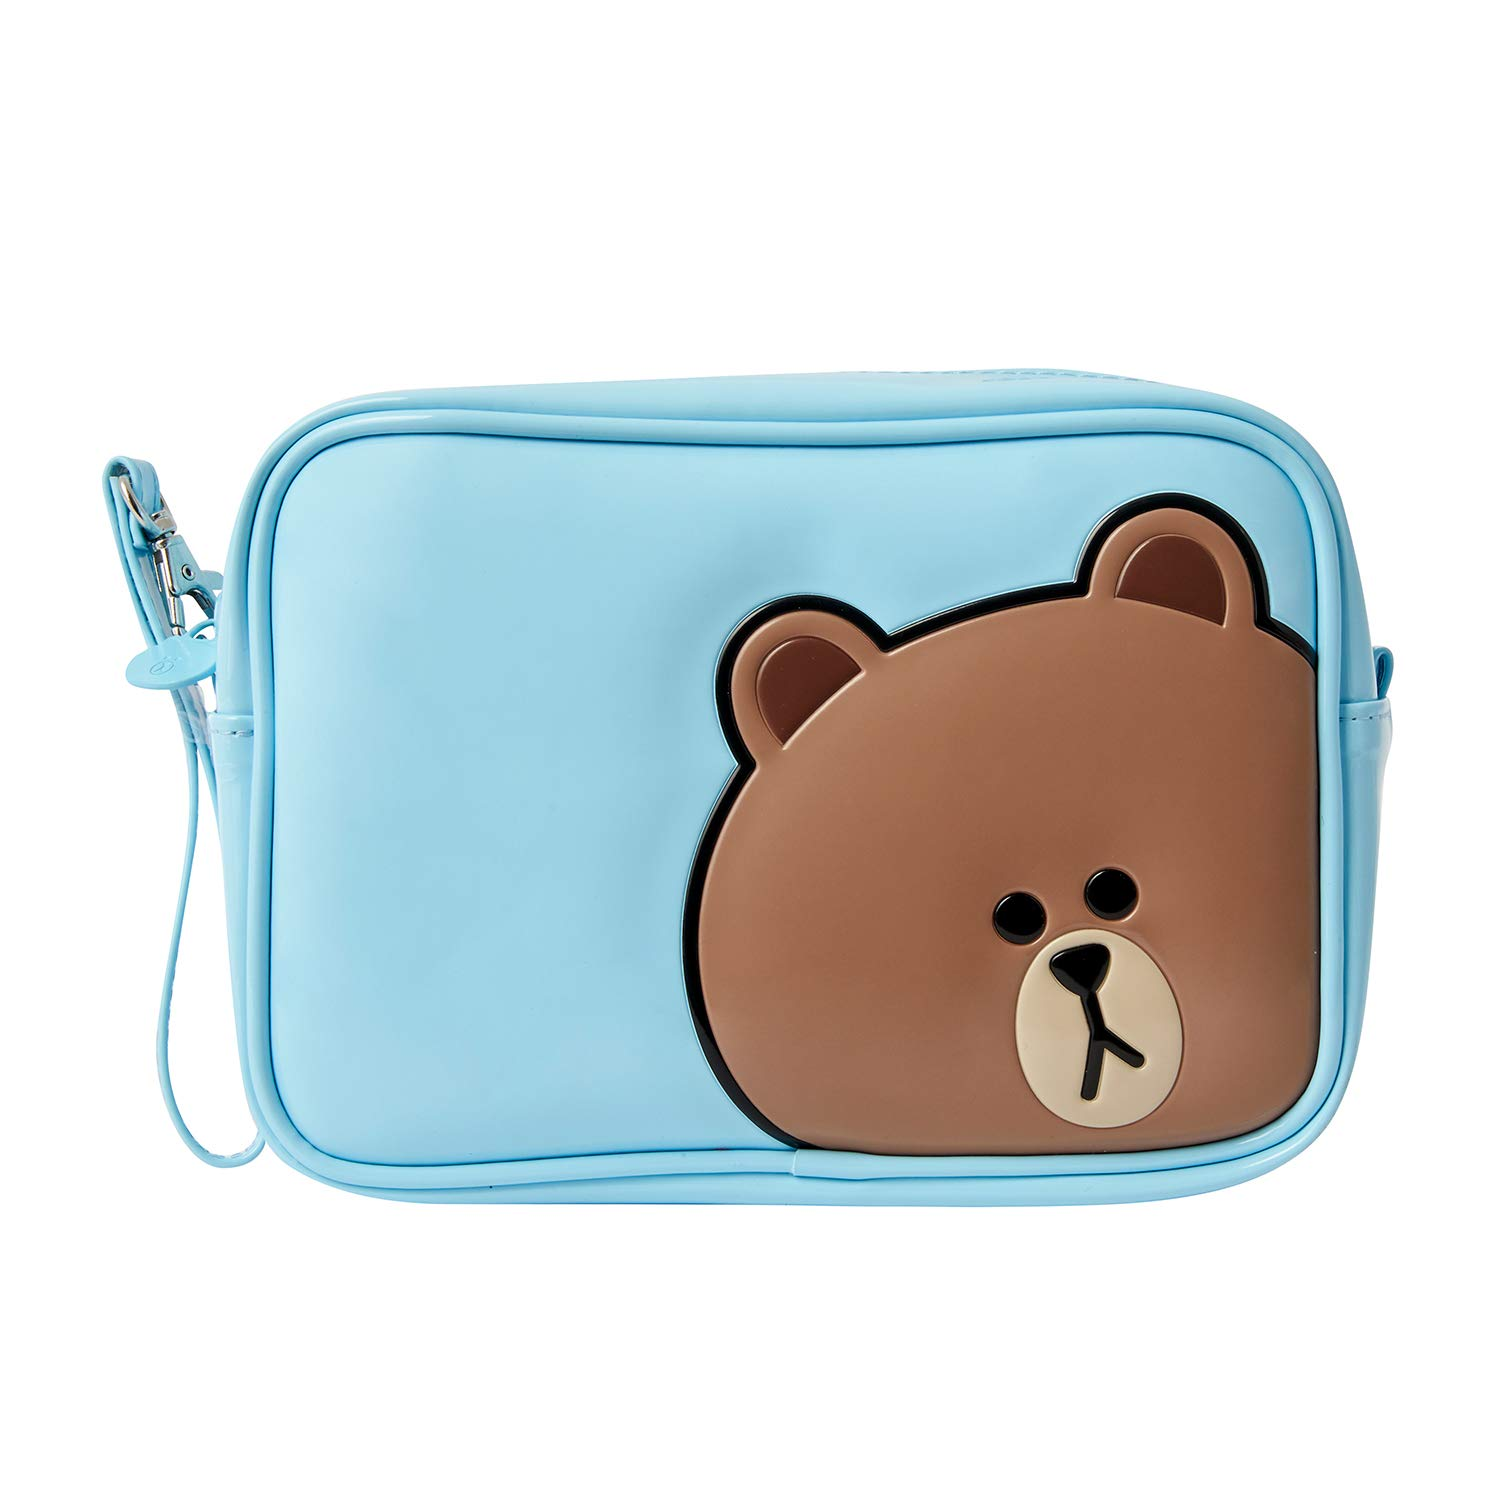 Line Friends Enamel Cosmetic Bag – BROWN Character Travel Pouch Organizer for Toiletry and Makeup, Sky Blue